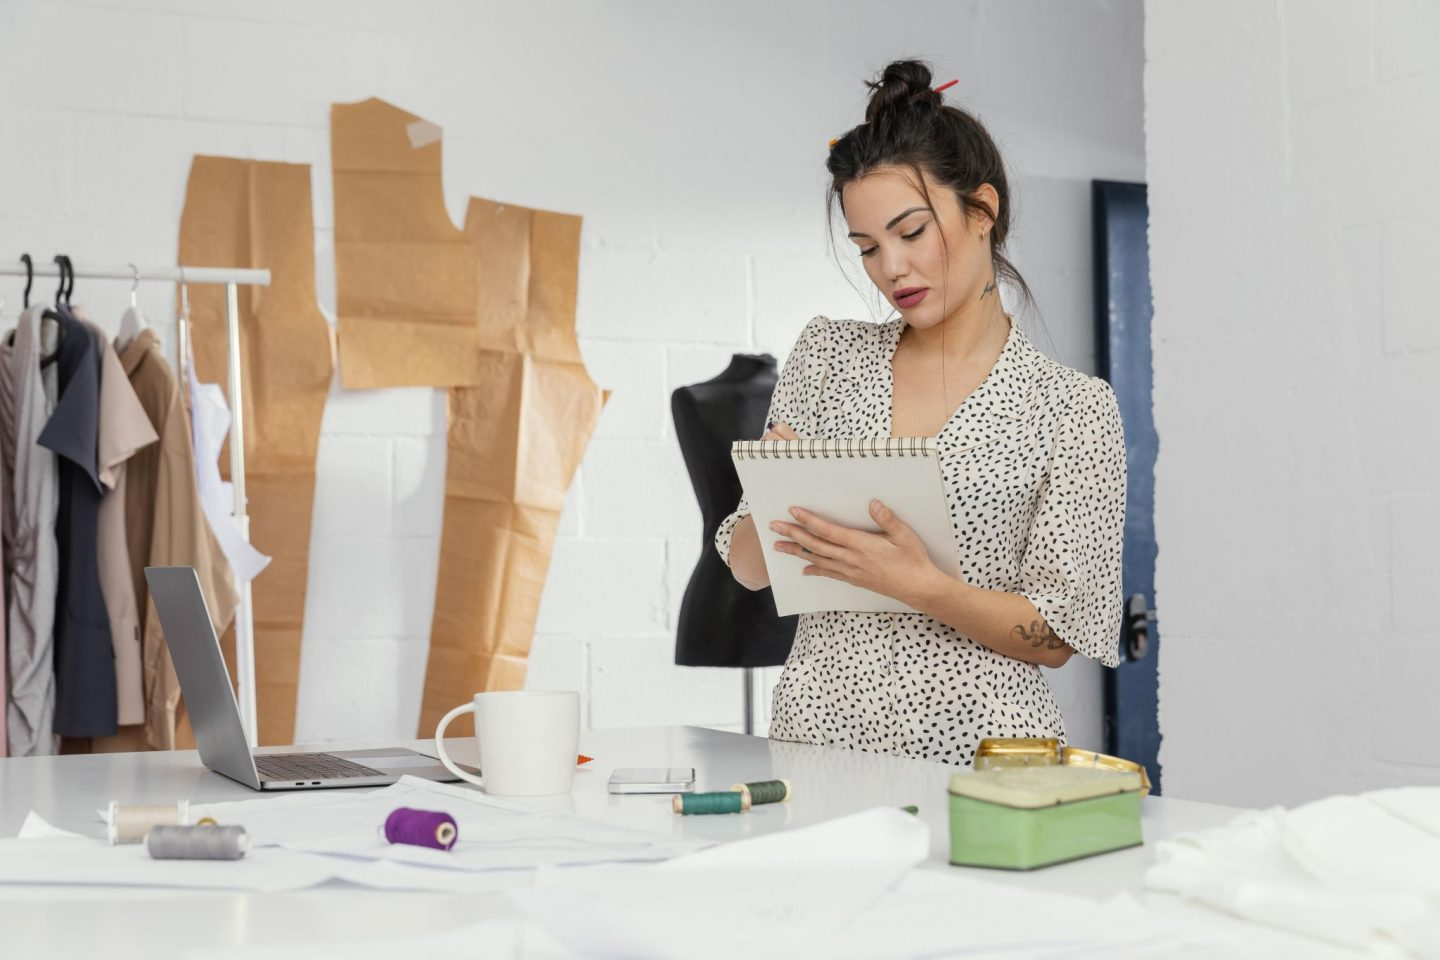 5 TIPS FOR WRITING A FASHION RESEARCH PAPER